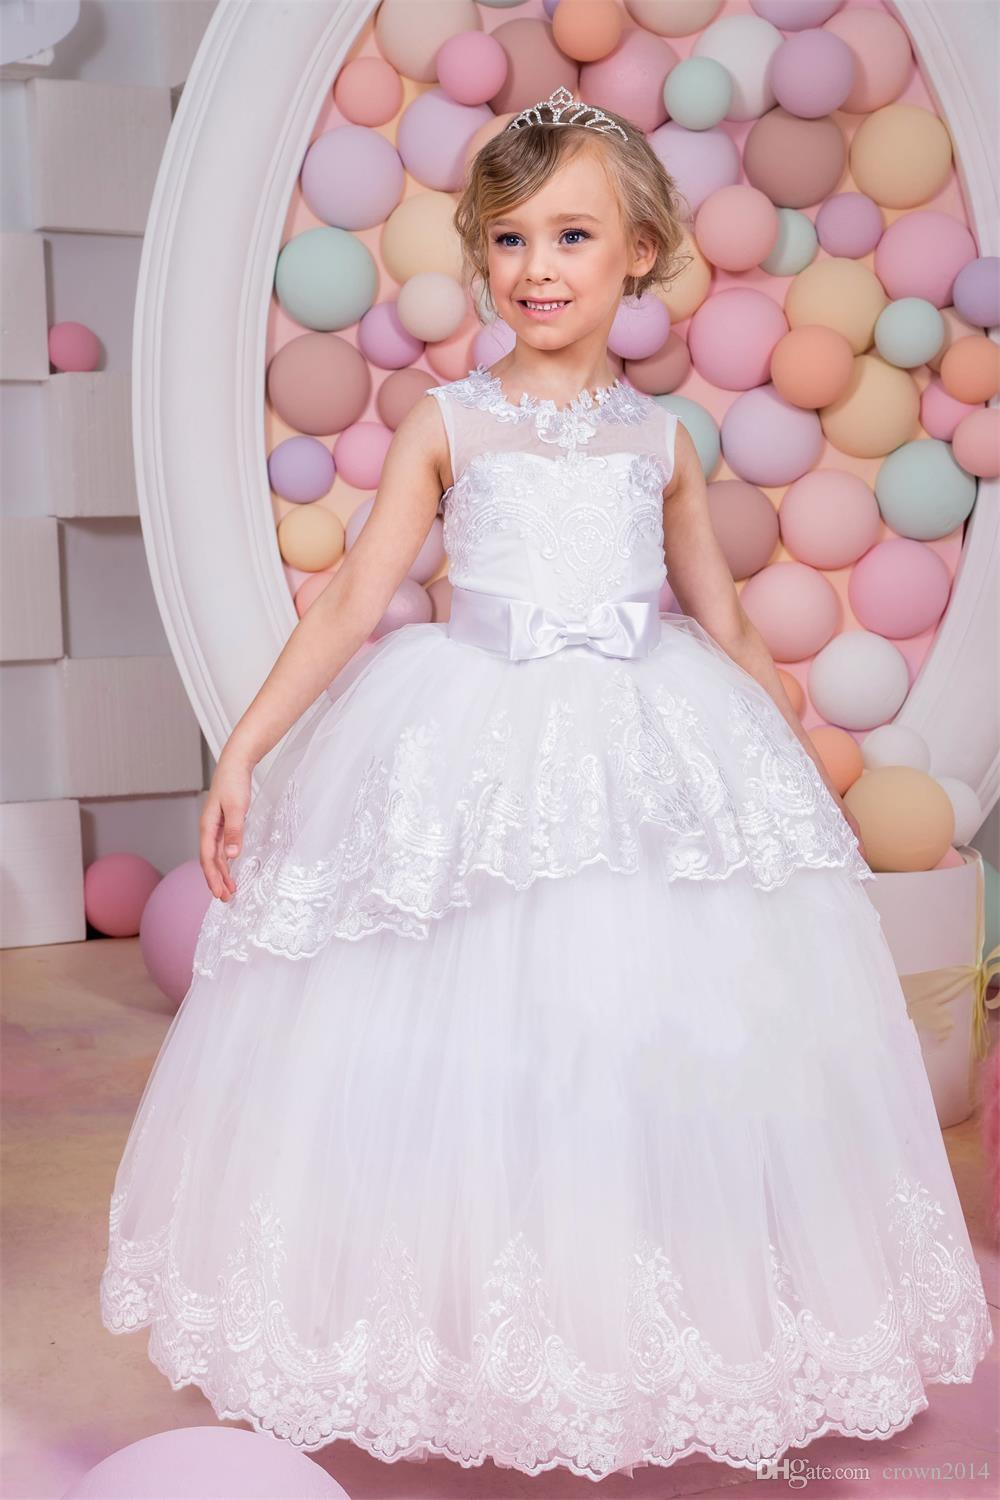 2019 Flower Girls Dresses For Wedding Tulle Lace Applique Two Layered Ball Gown Kids Children Floor Length Party Pageant Gowns With Bow